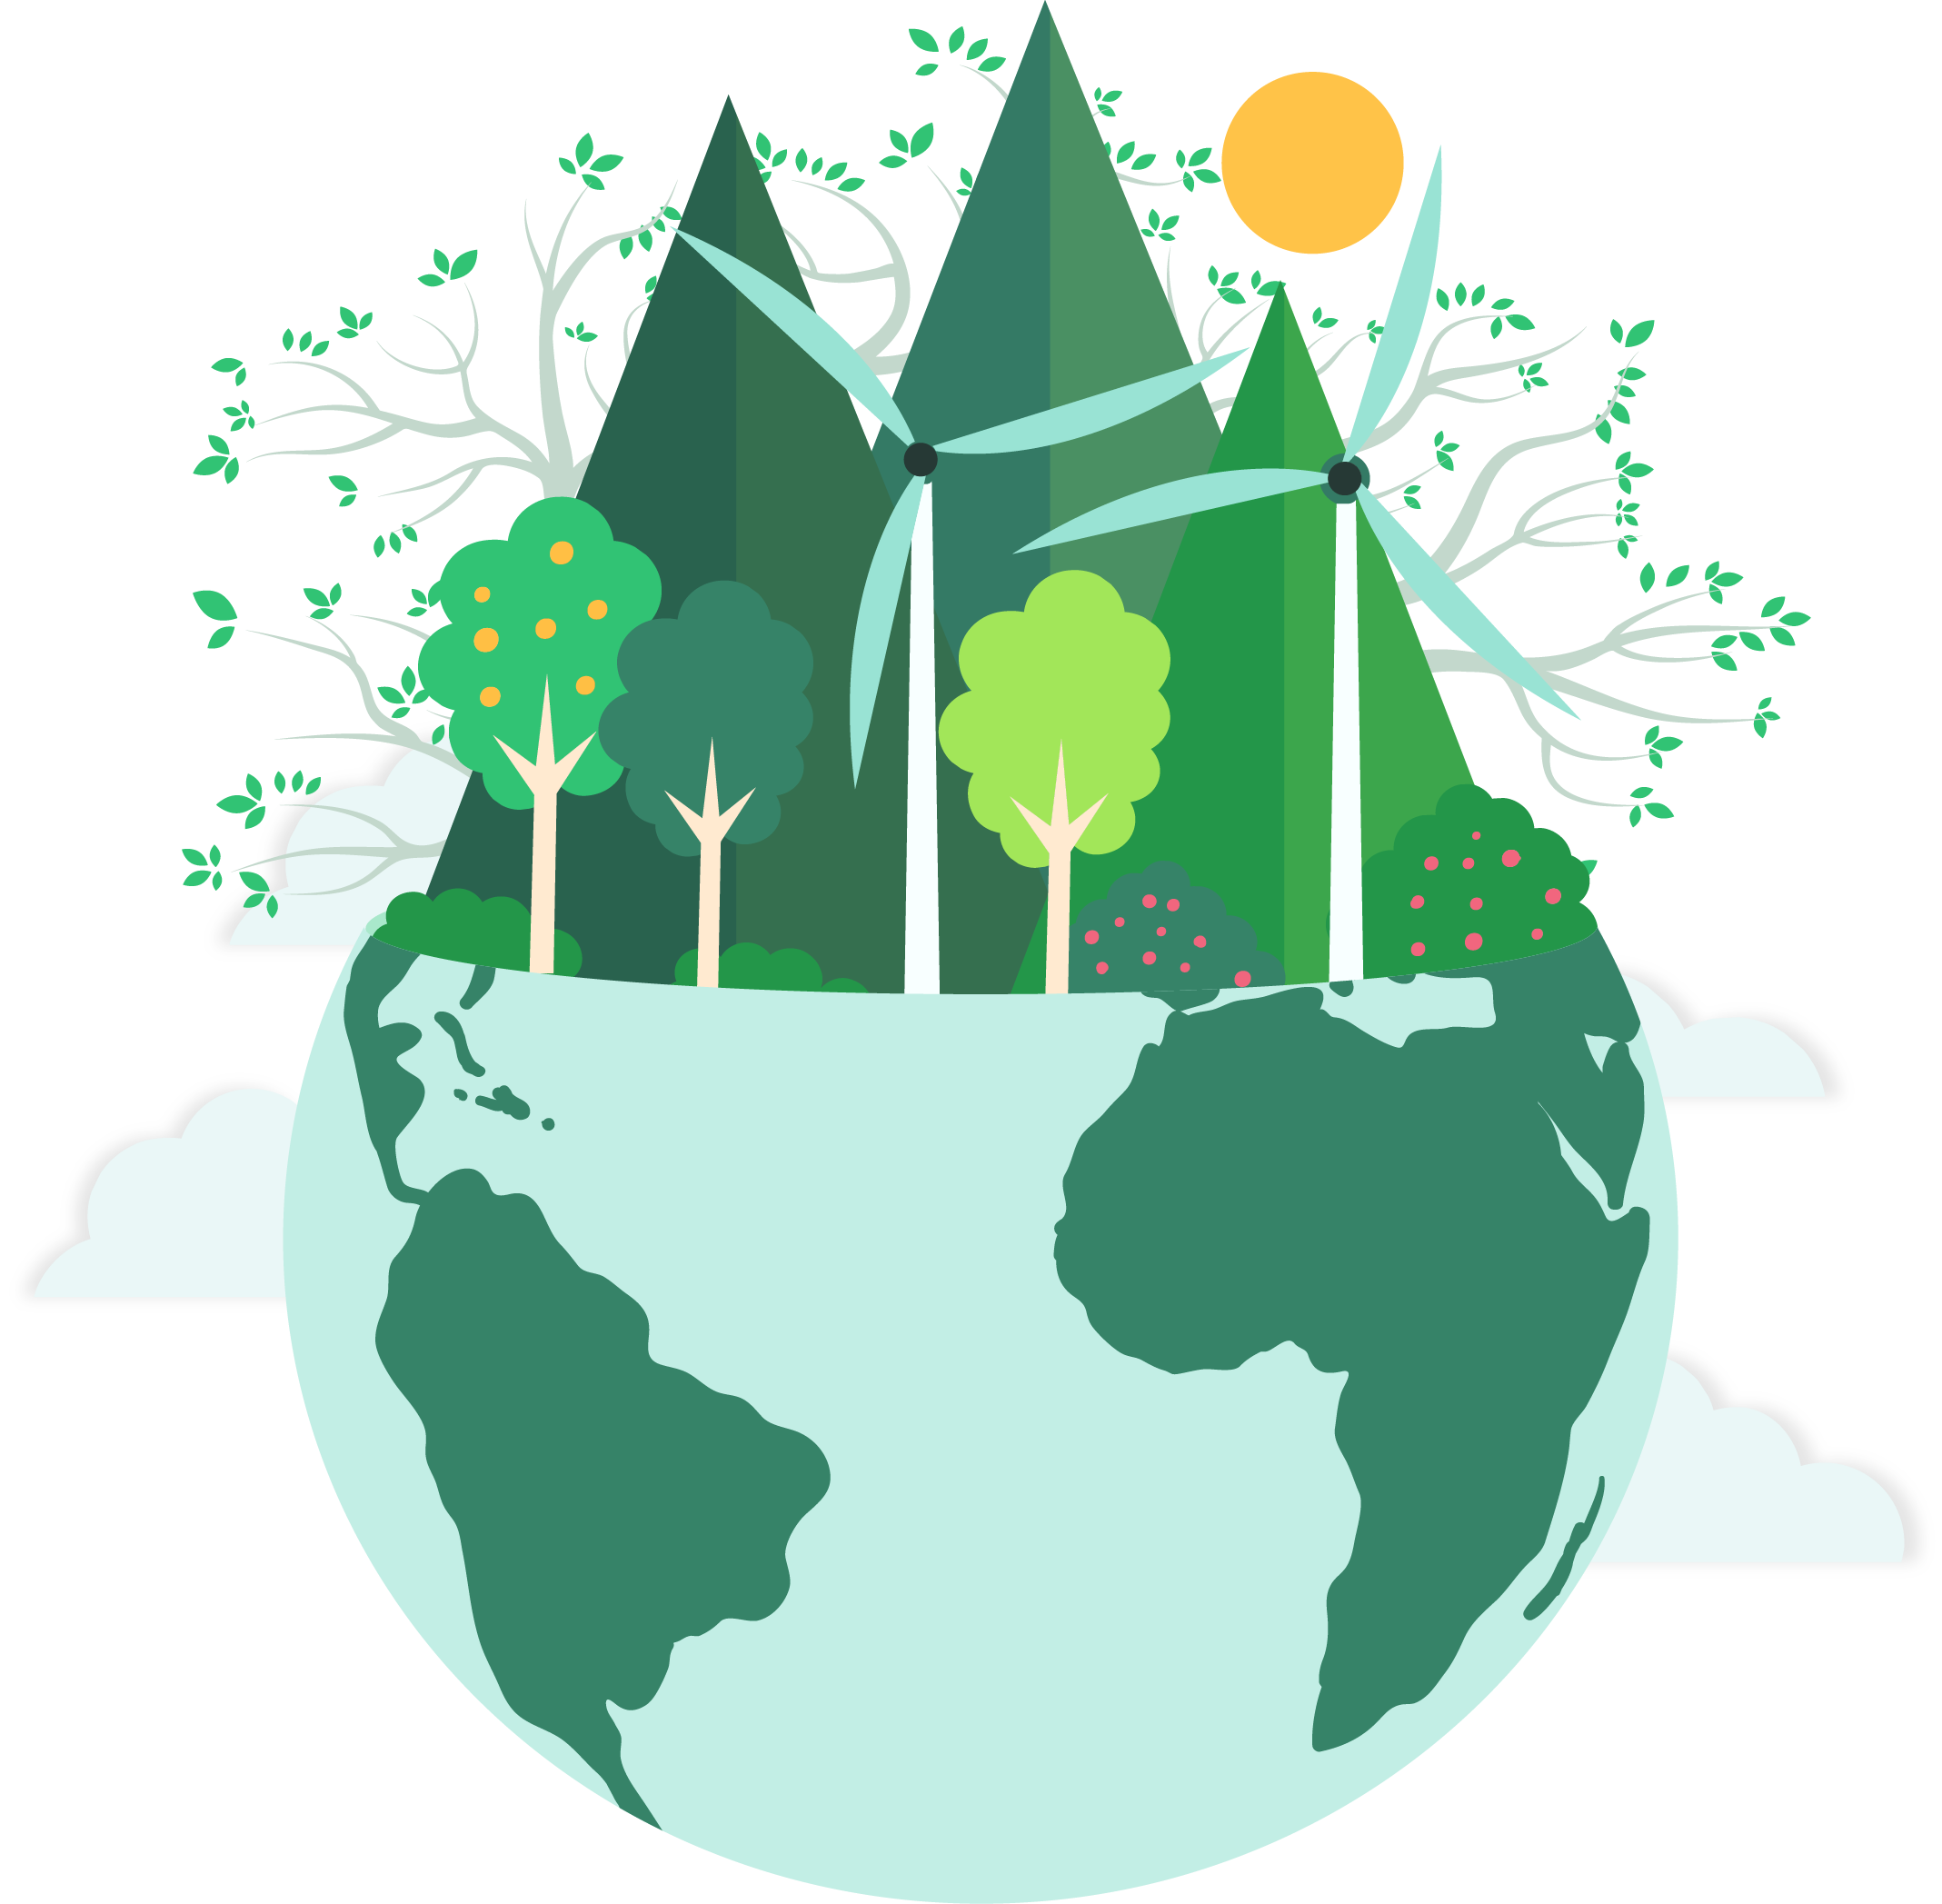 Climate drawing earth. Month calendar of